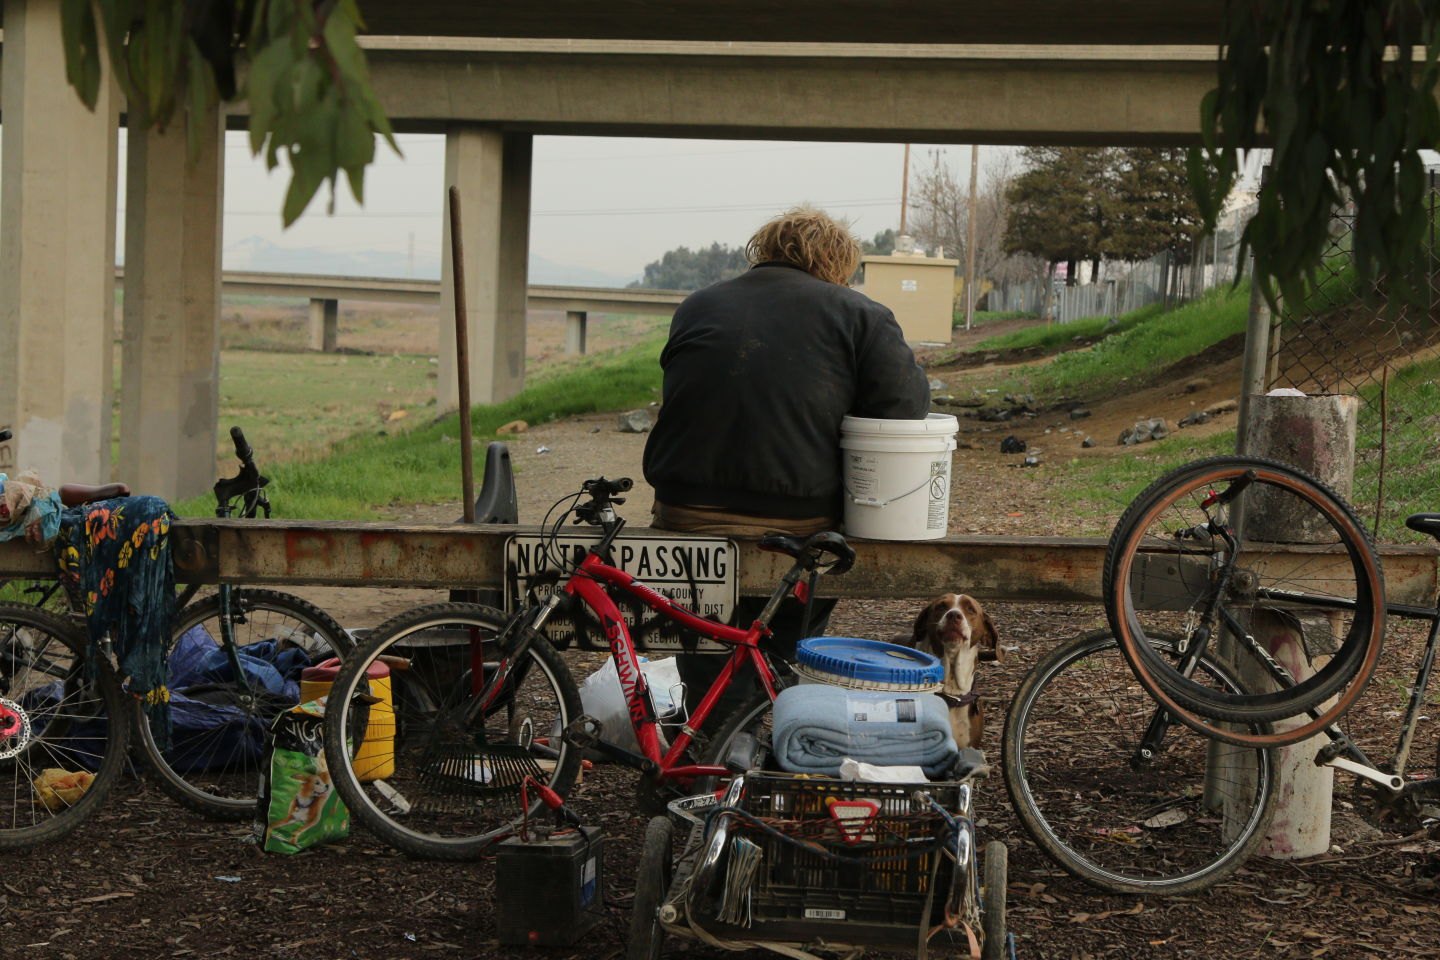 A homeless man sits at his encampment in Contra Costa County, where volunteers warned of a rainstorm that could flood the canal under the overpass where he was situated.  Ericka Cruz Guevarra/KQED